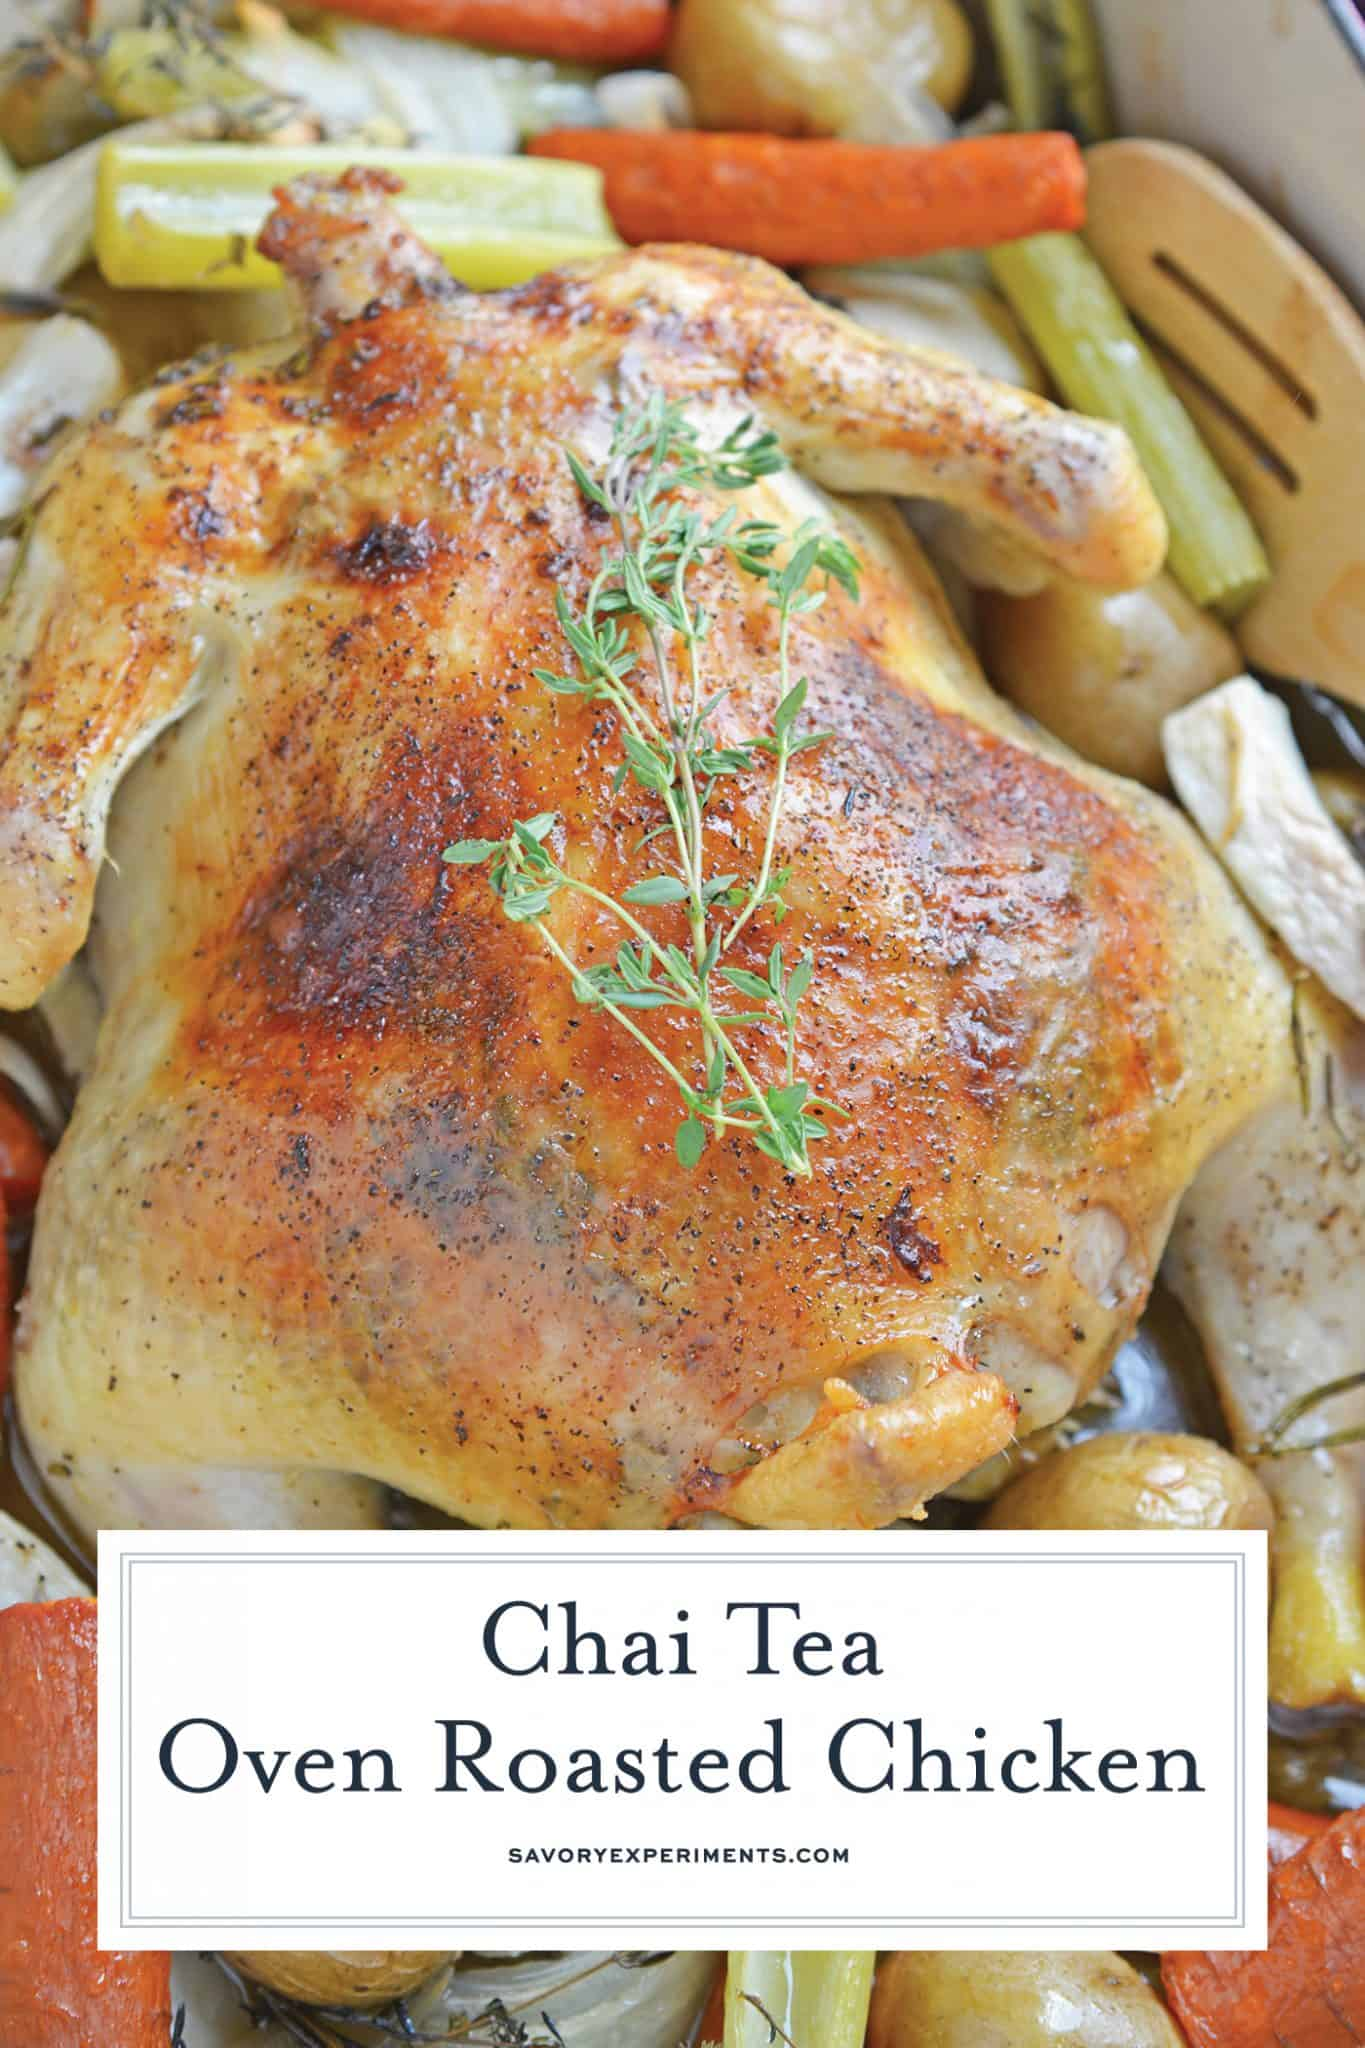 Chai Tea Oven Roasted Chicken is a baked whole chicken rubbed with spiced herb butter, root vegetables and the earthy fall flavors of Chai tea. #ovenroastedchicken #howtoroastawholechicken www.savoryexperiments.com